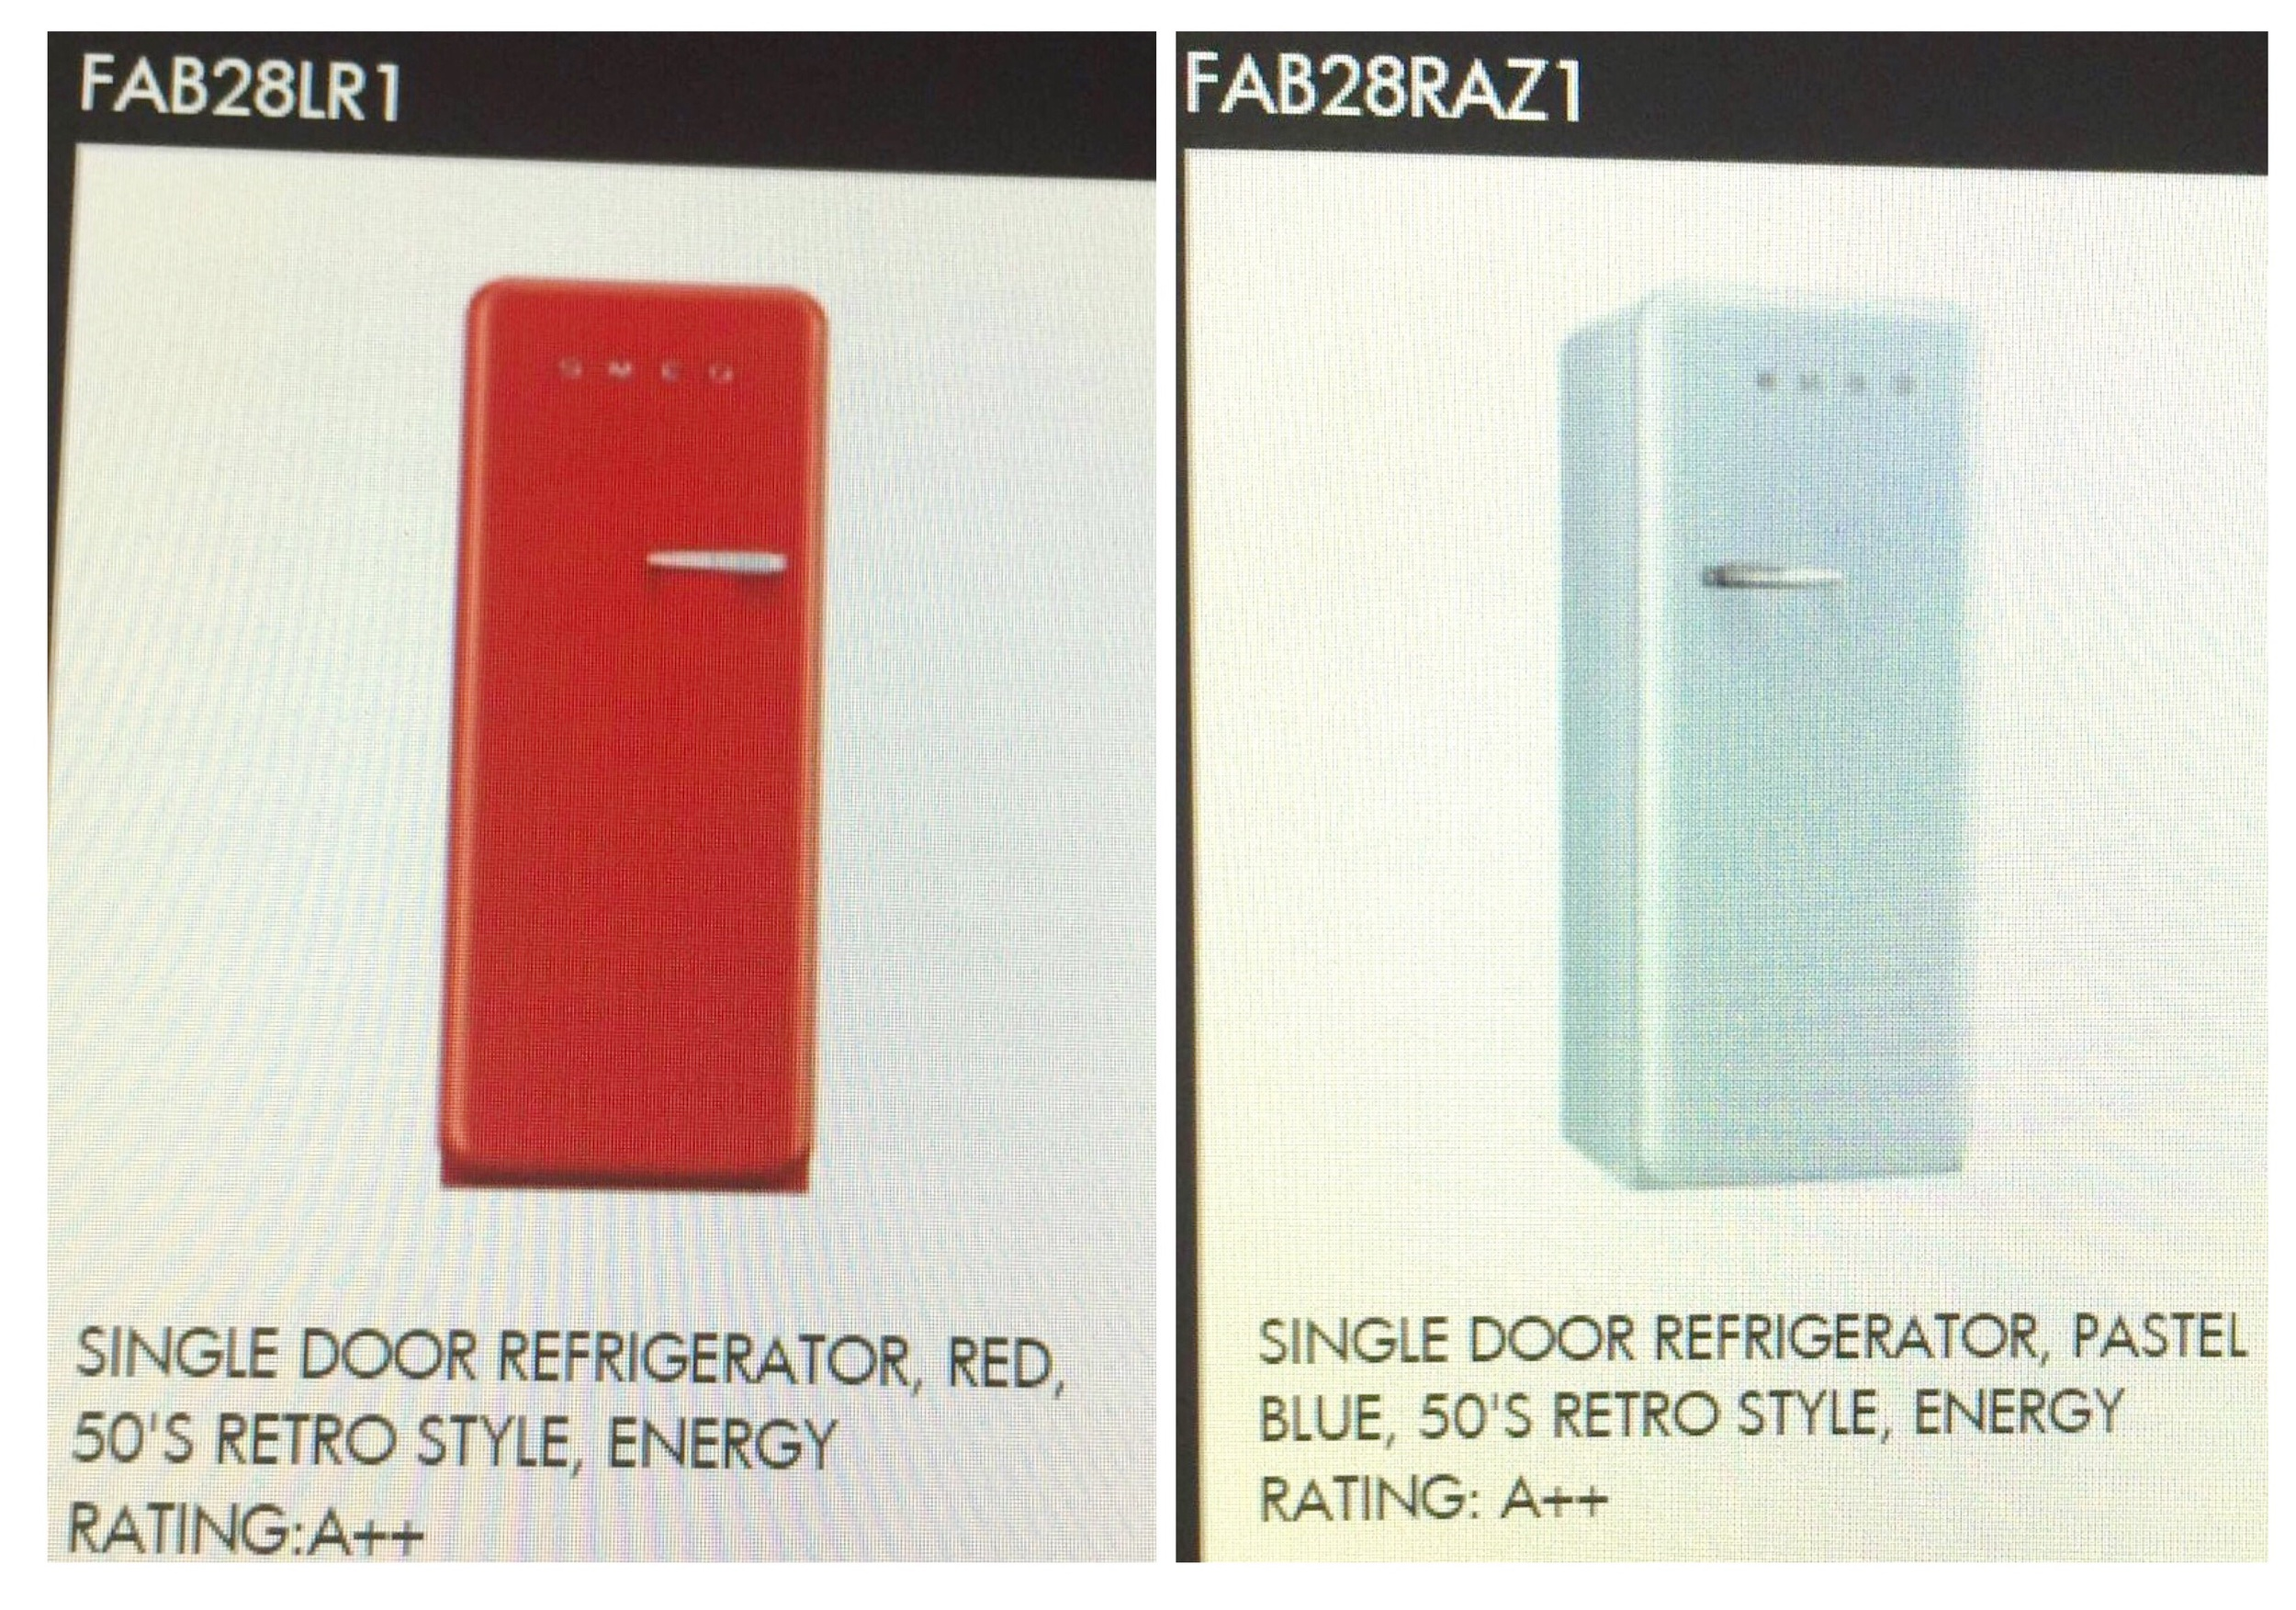 Retro fridges by Smeg - L means hinges are left, and R means Hinges are Right ... important details!